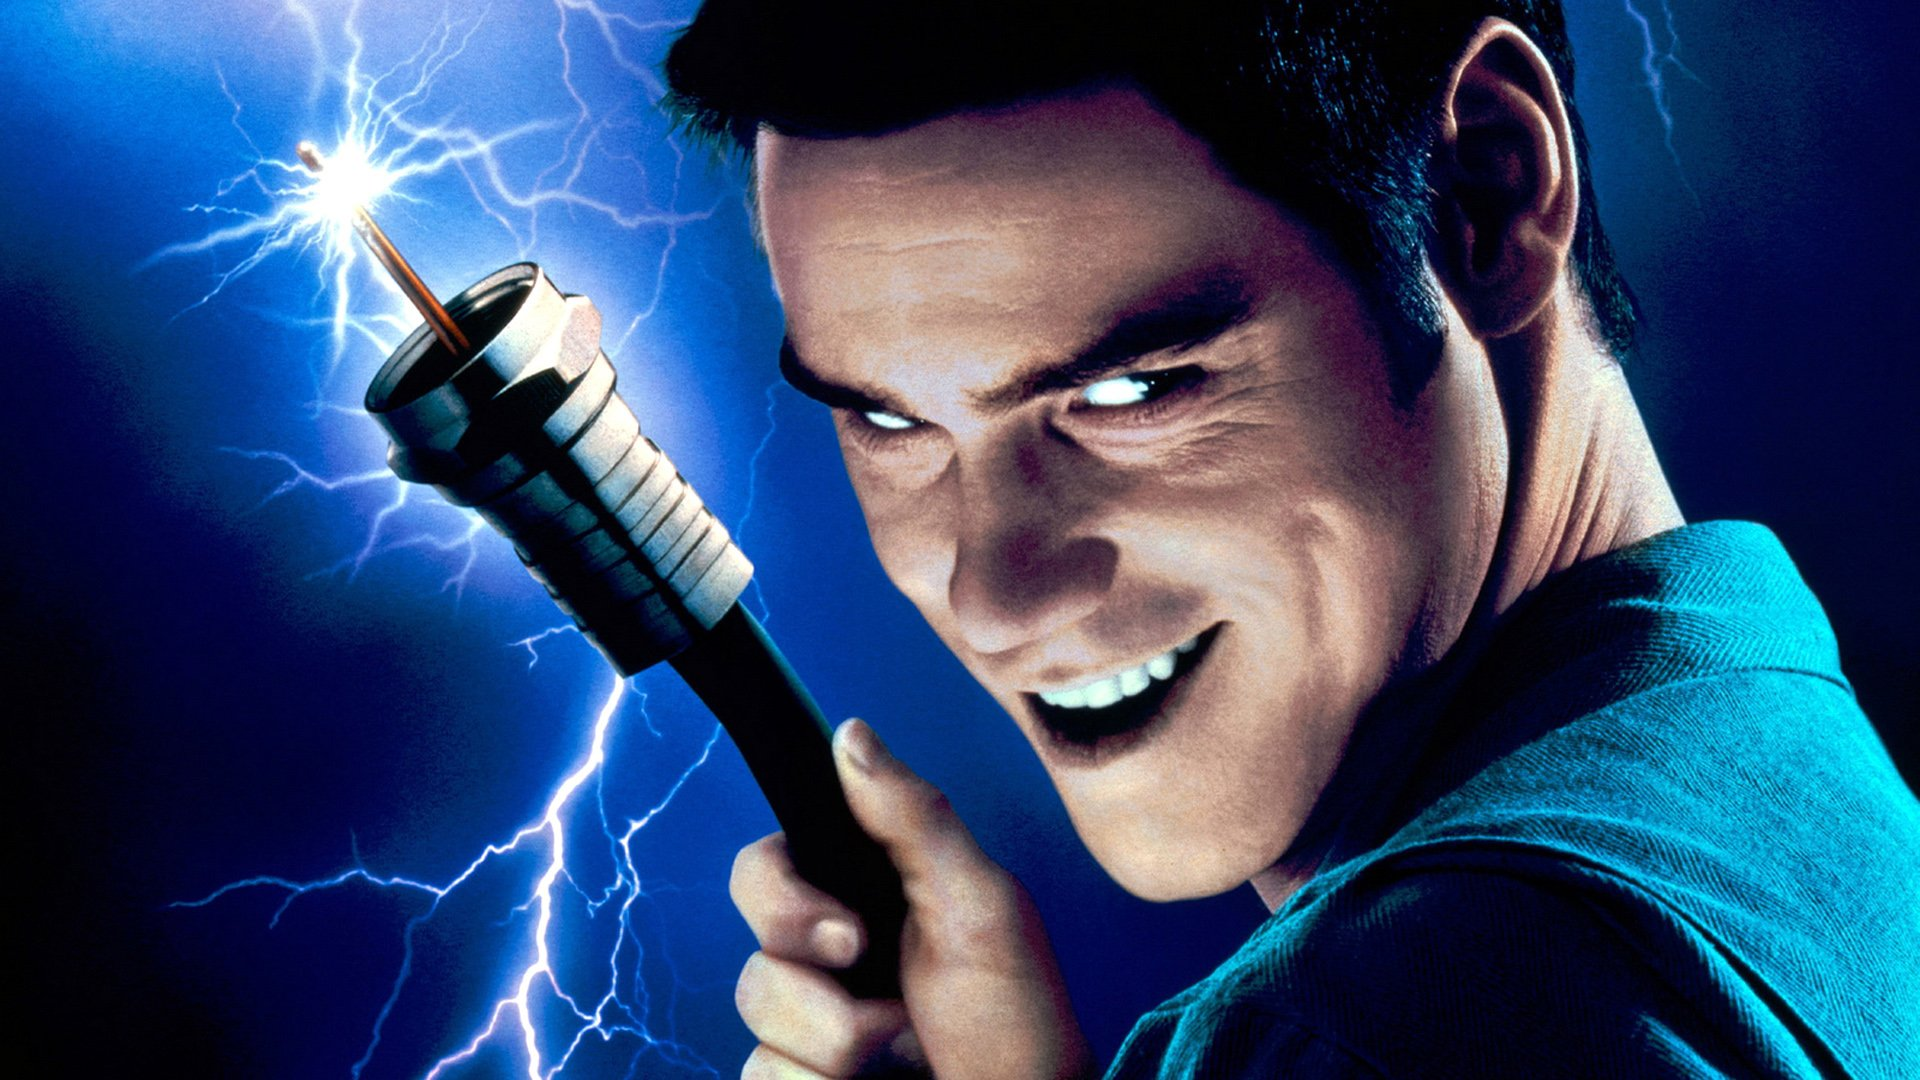 2 the cable guy hd wallpapers | background images - wallpaper abyss